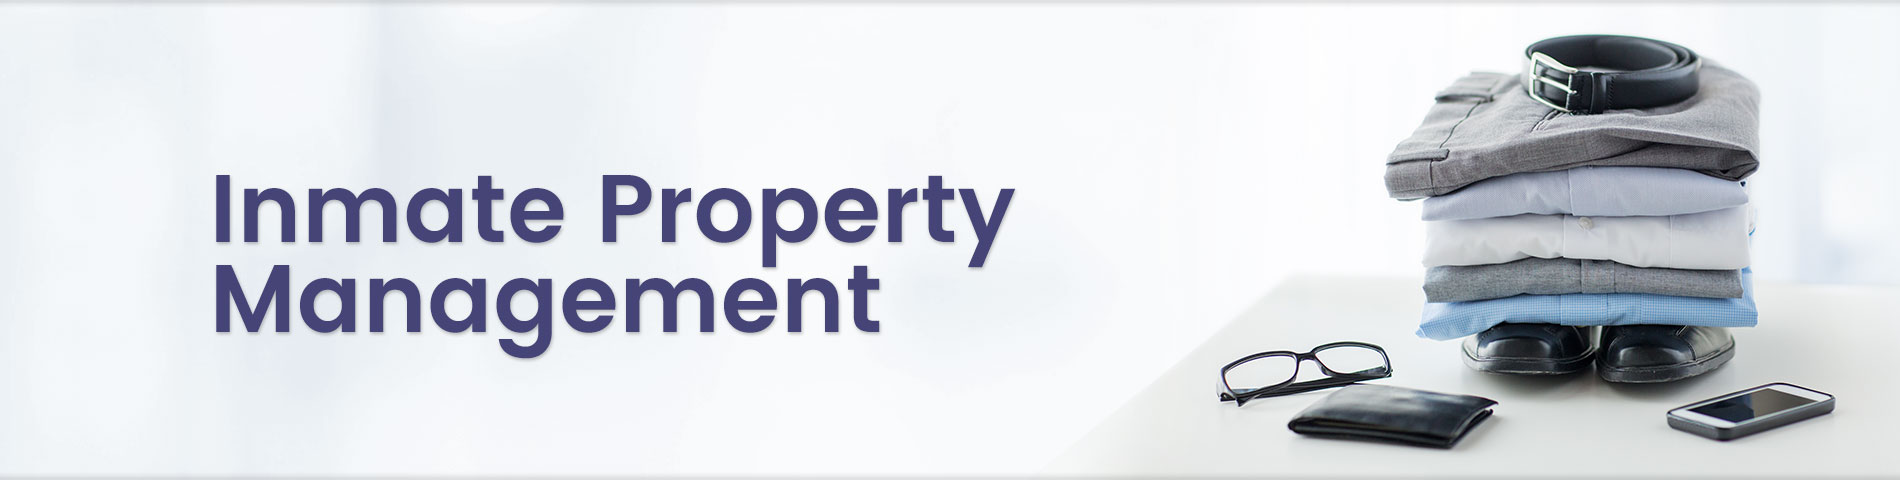 Inmate Property Management